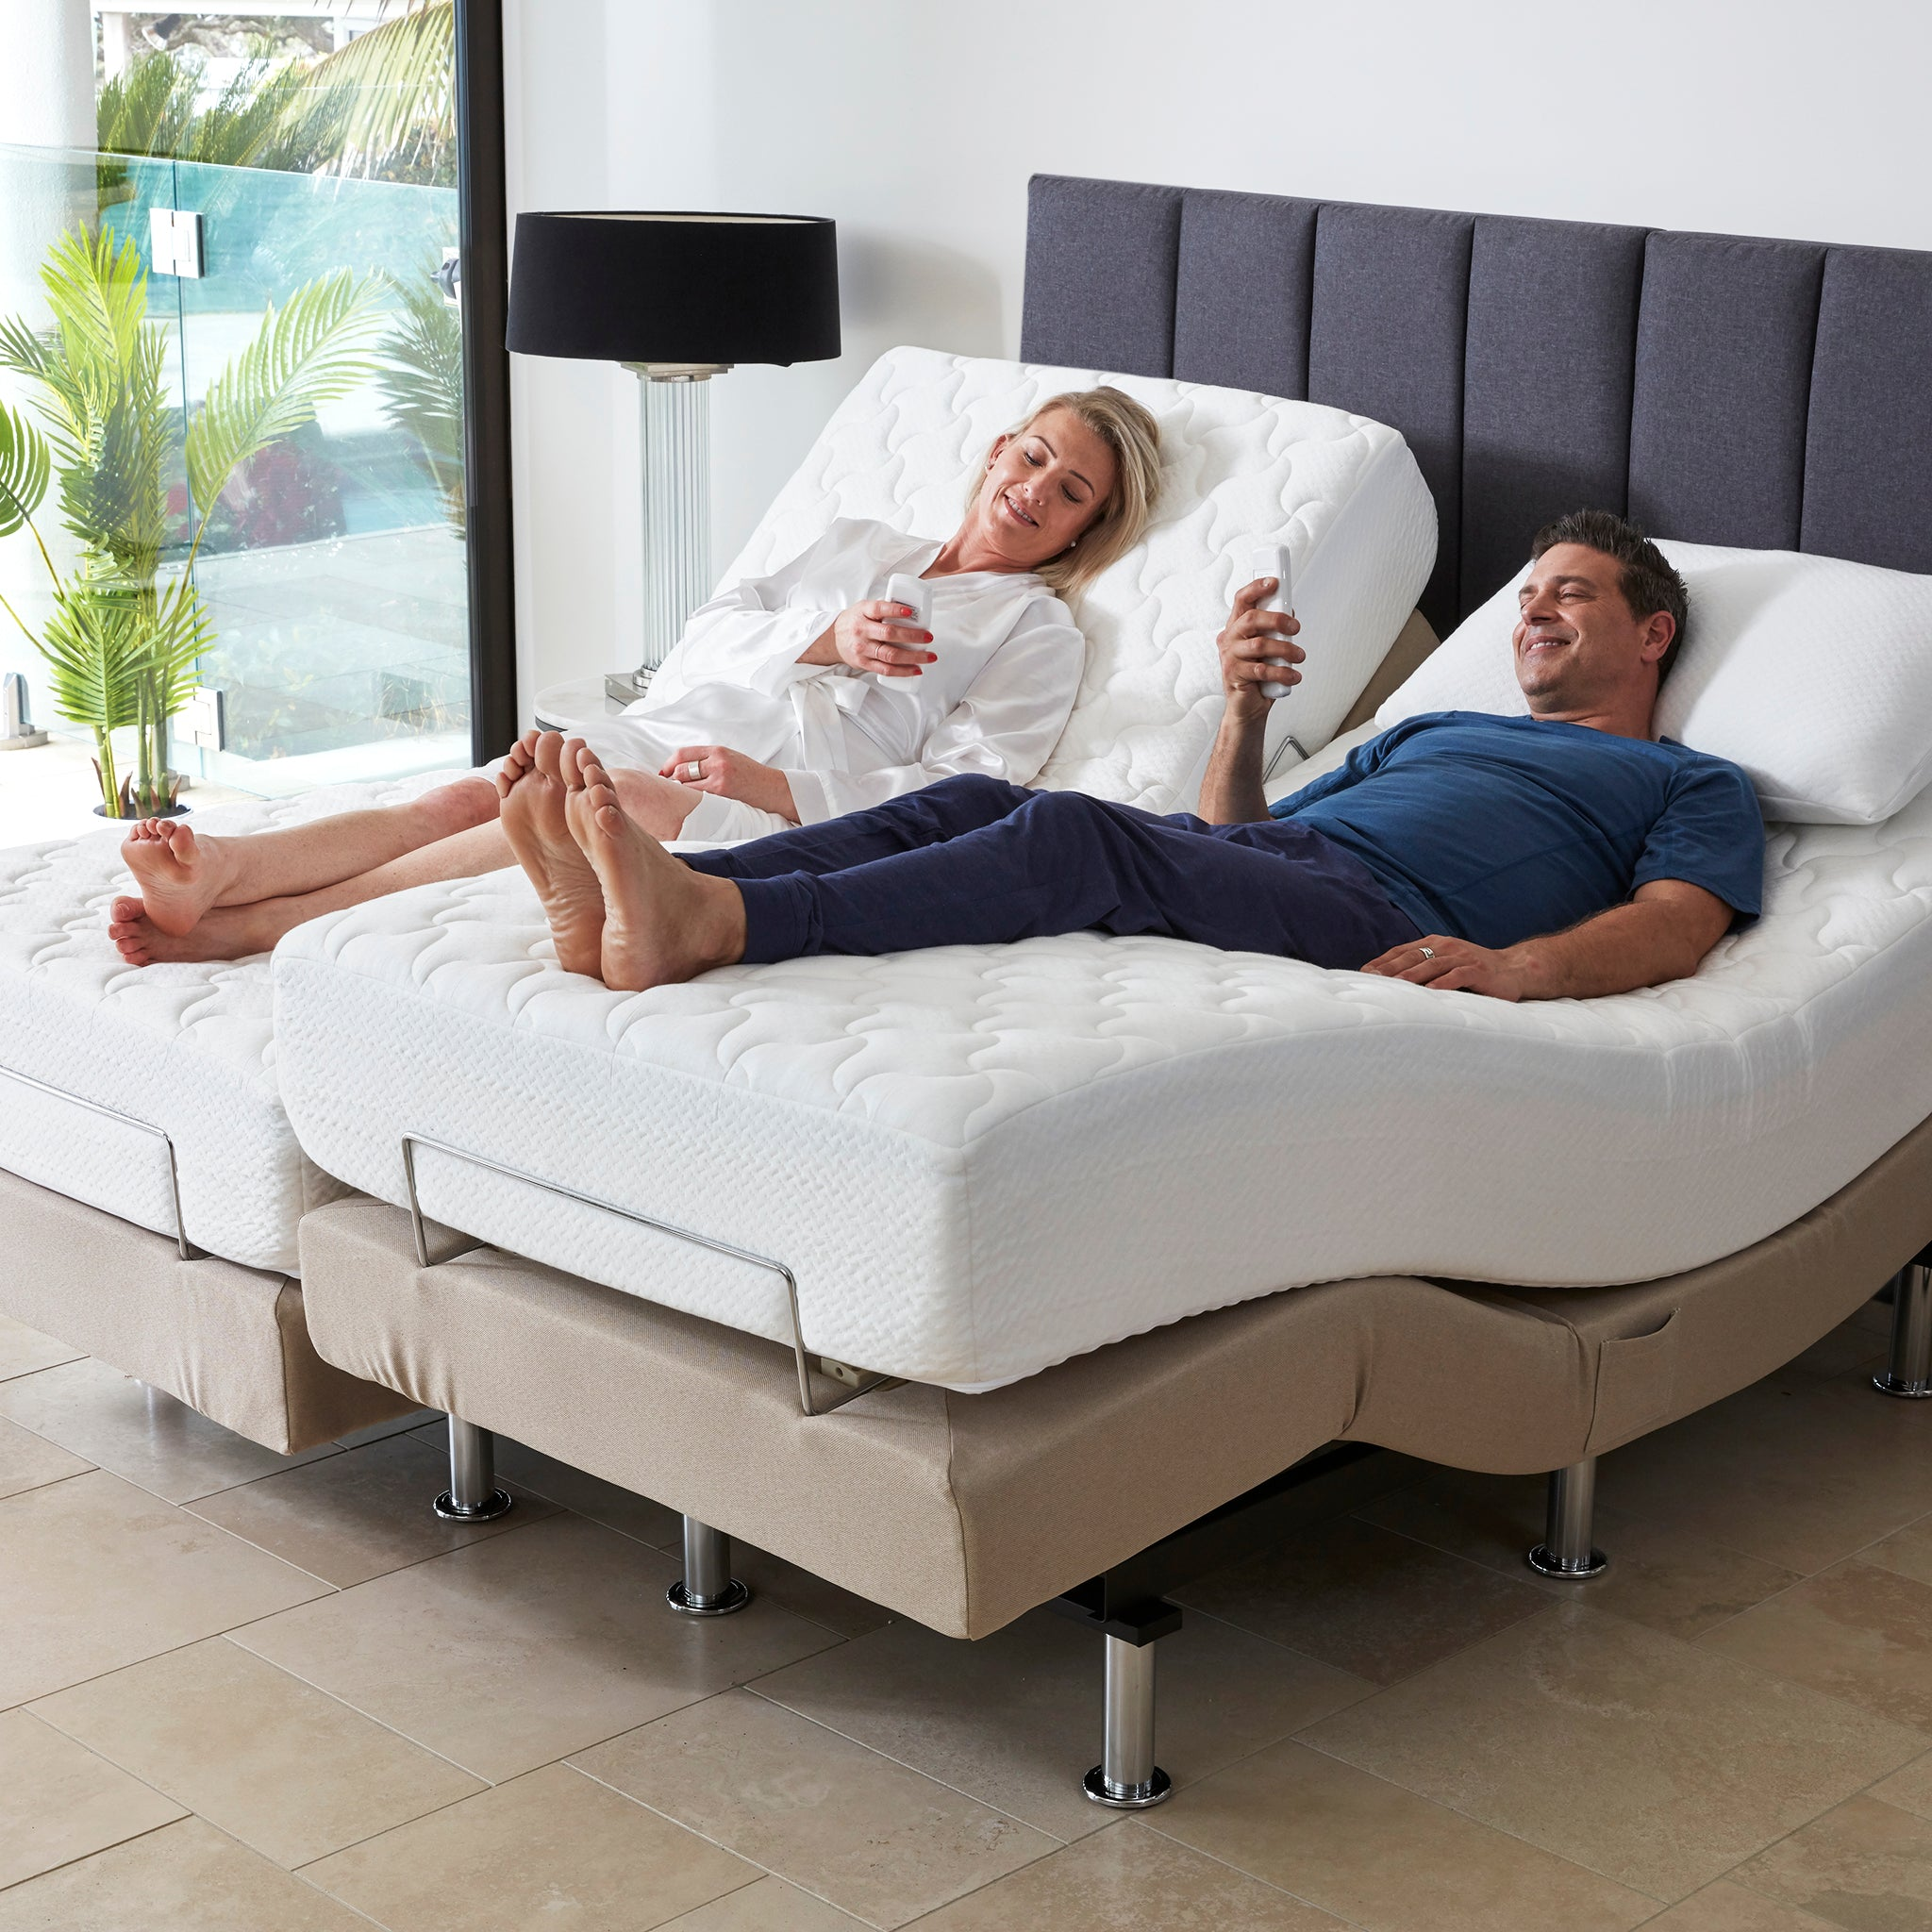 Picture of: Perfect Fit Adjustable Massage Bed Split Queen Bambillo Au